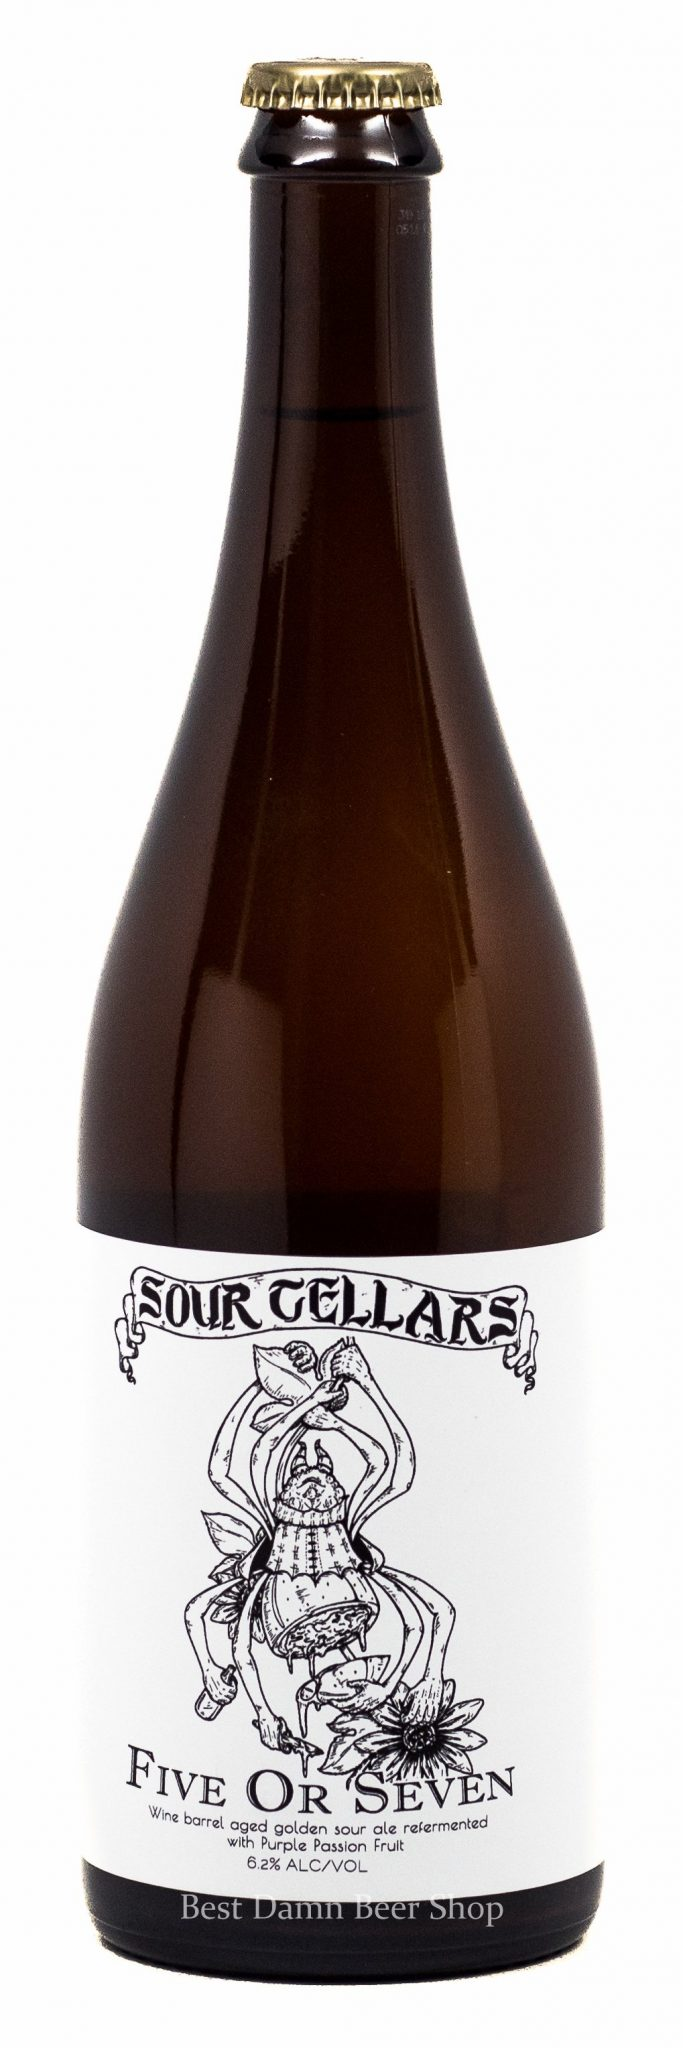 Buy Sour Cellars Five or Seven passion fruit 750ml Online